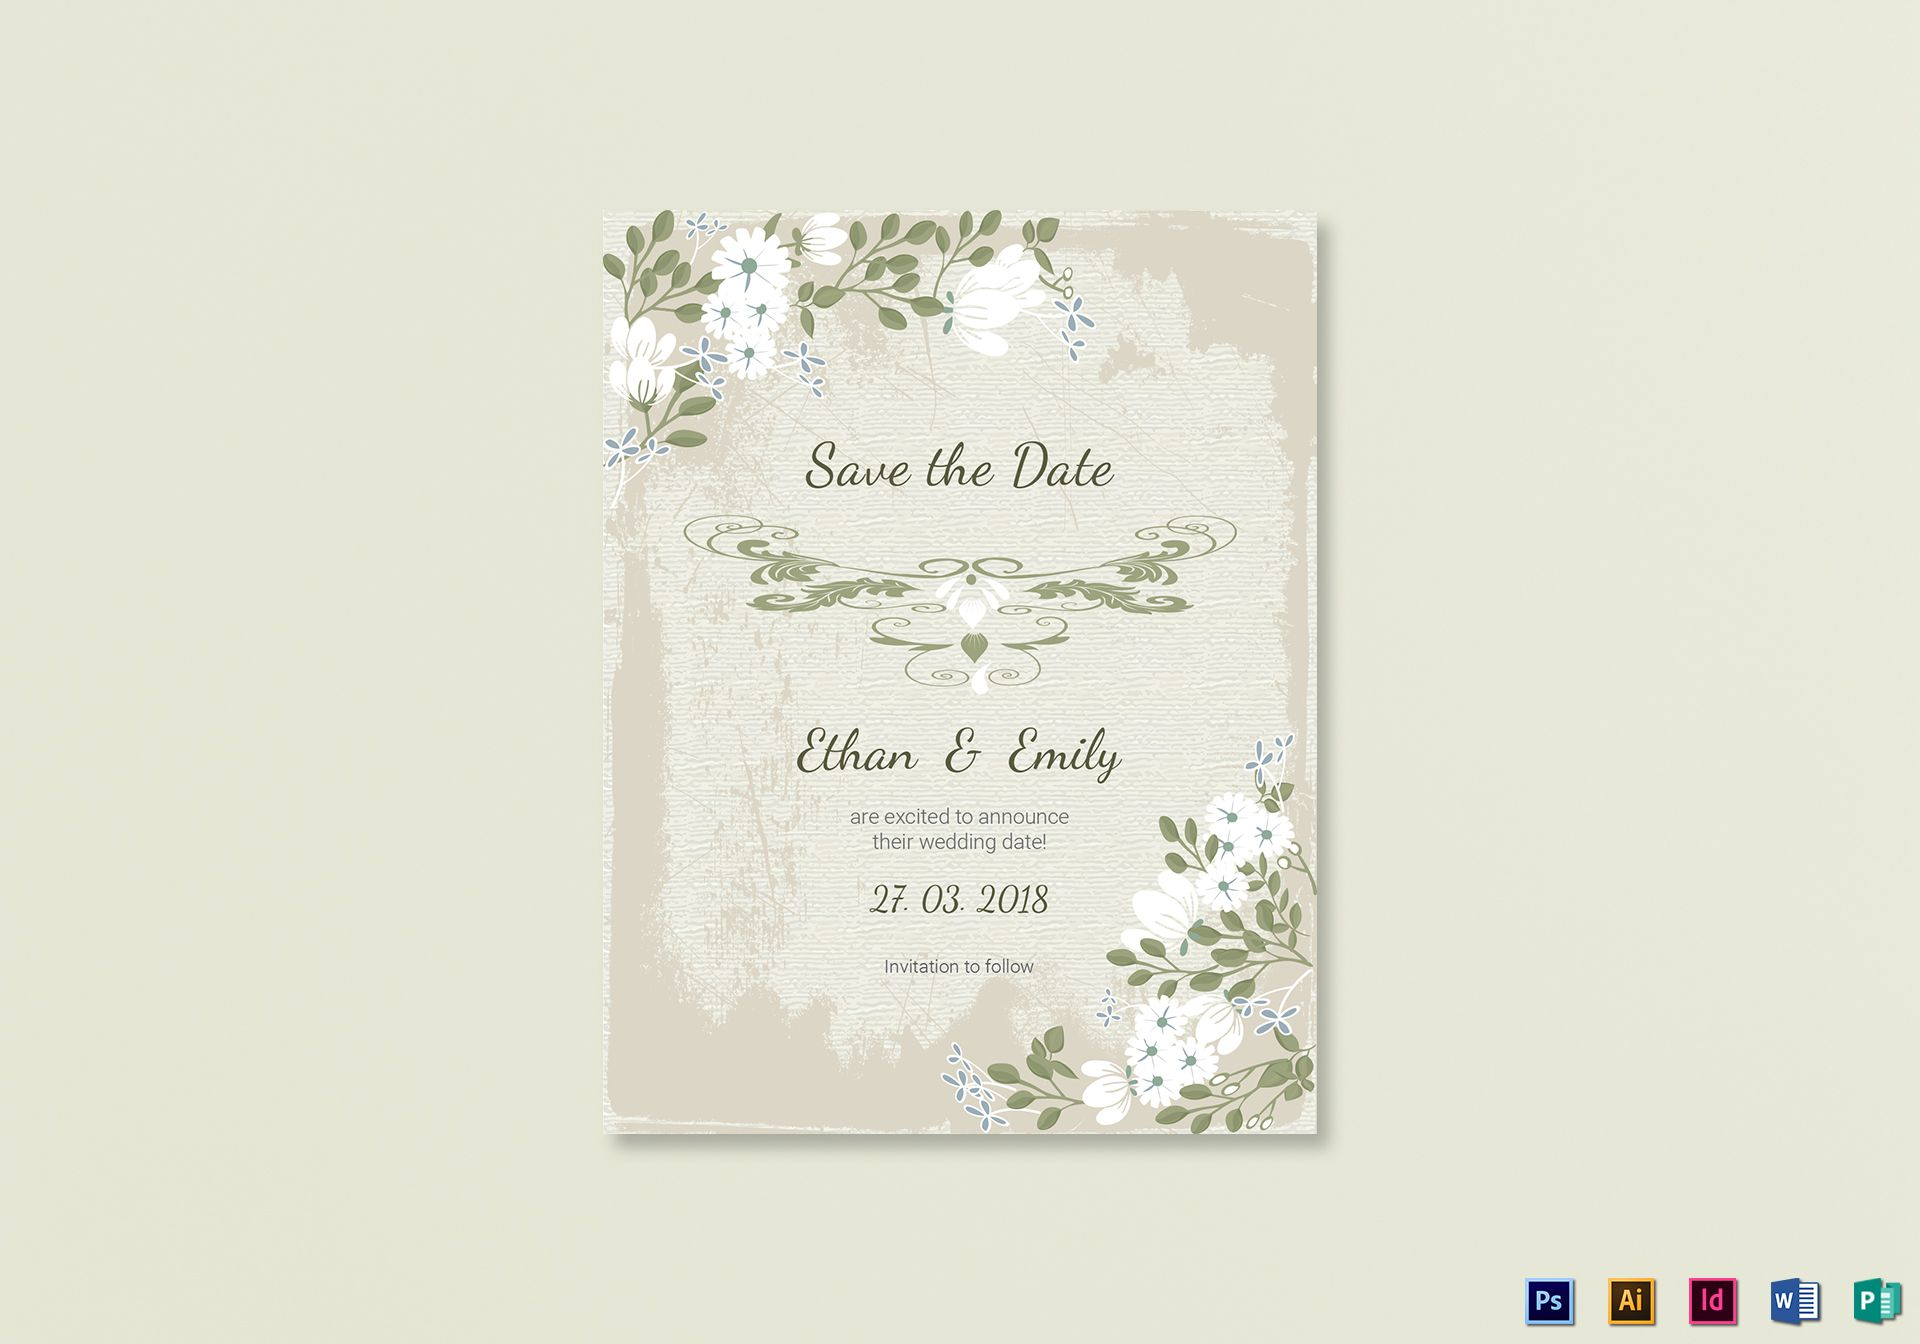 Vintage Save the Date Card Template